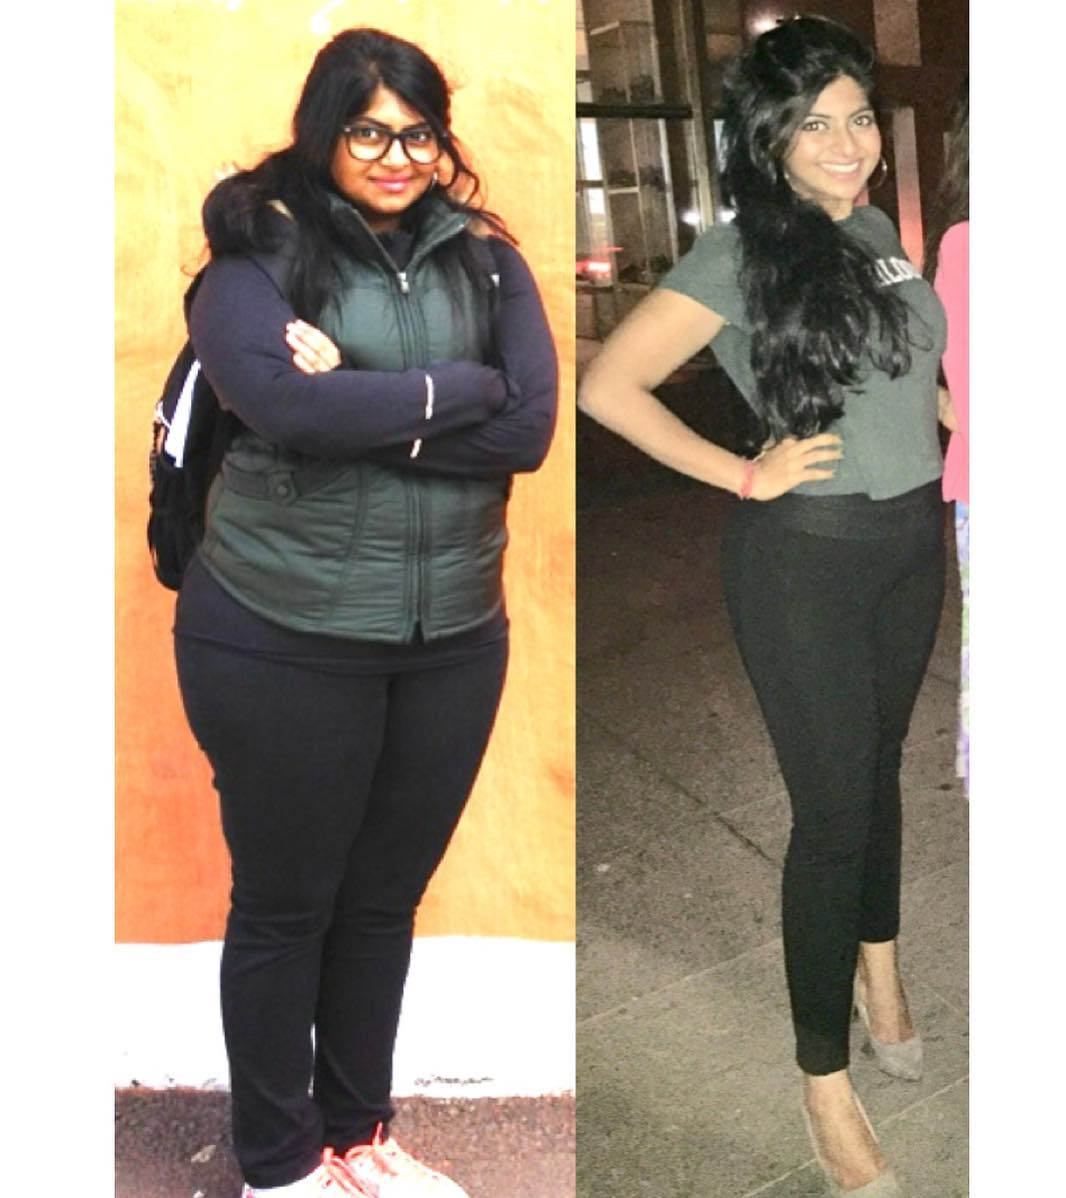 5 foot 6 Female Before and After 90 lbs Weight Loss 242 lbs to 152 lbs